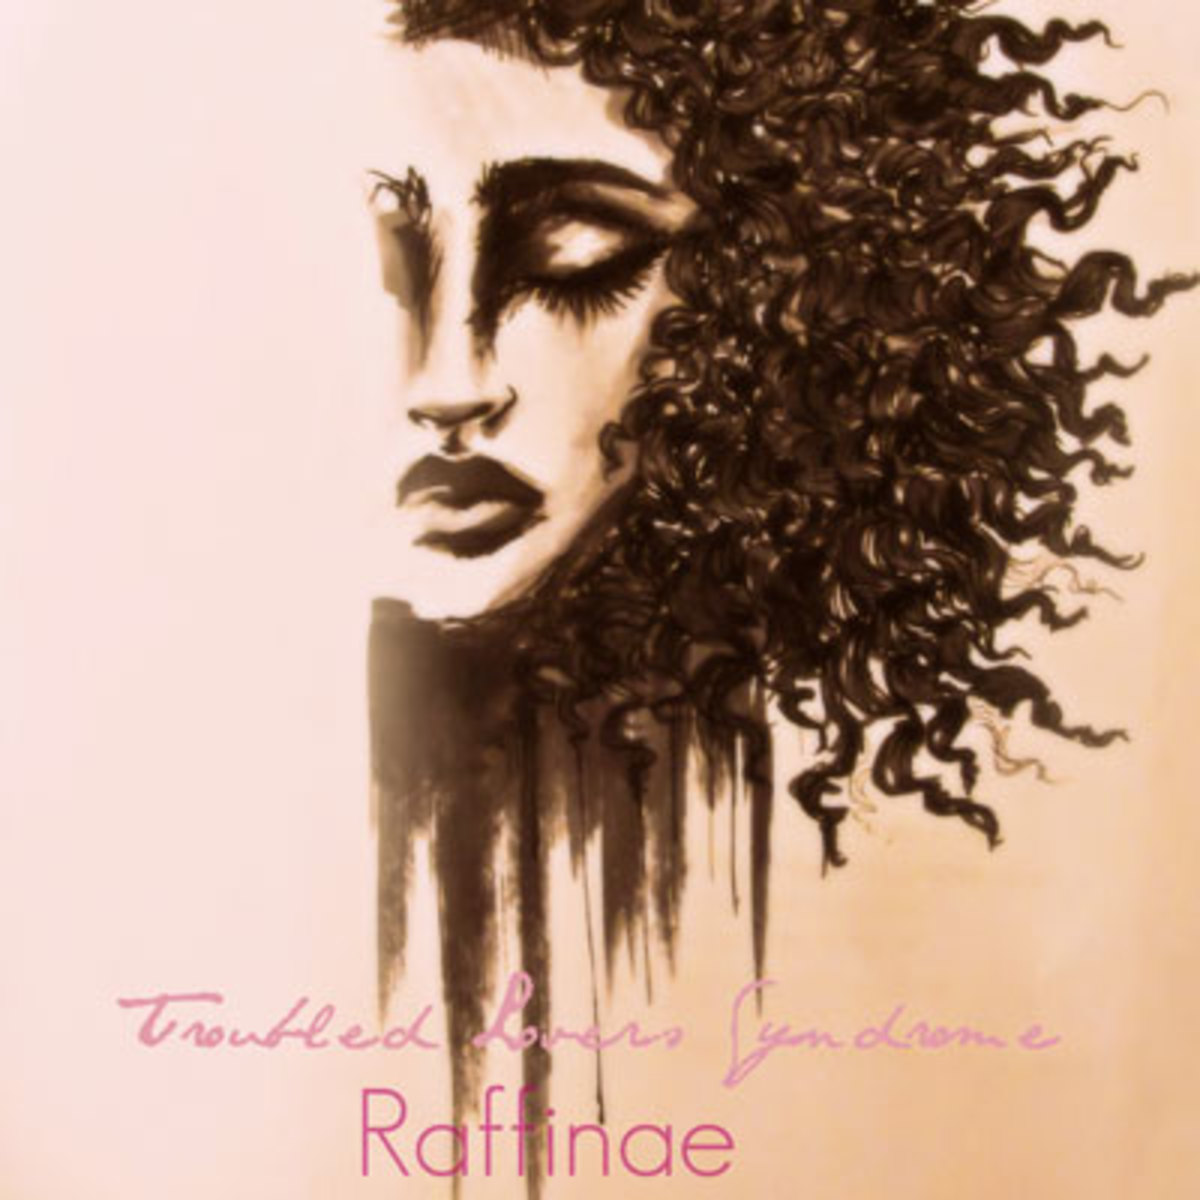 raffinae-troubledlovers.jpg